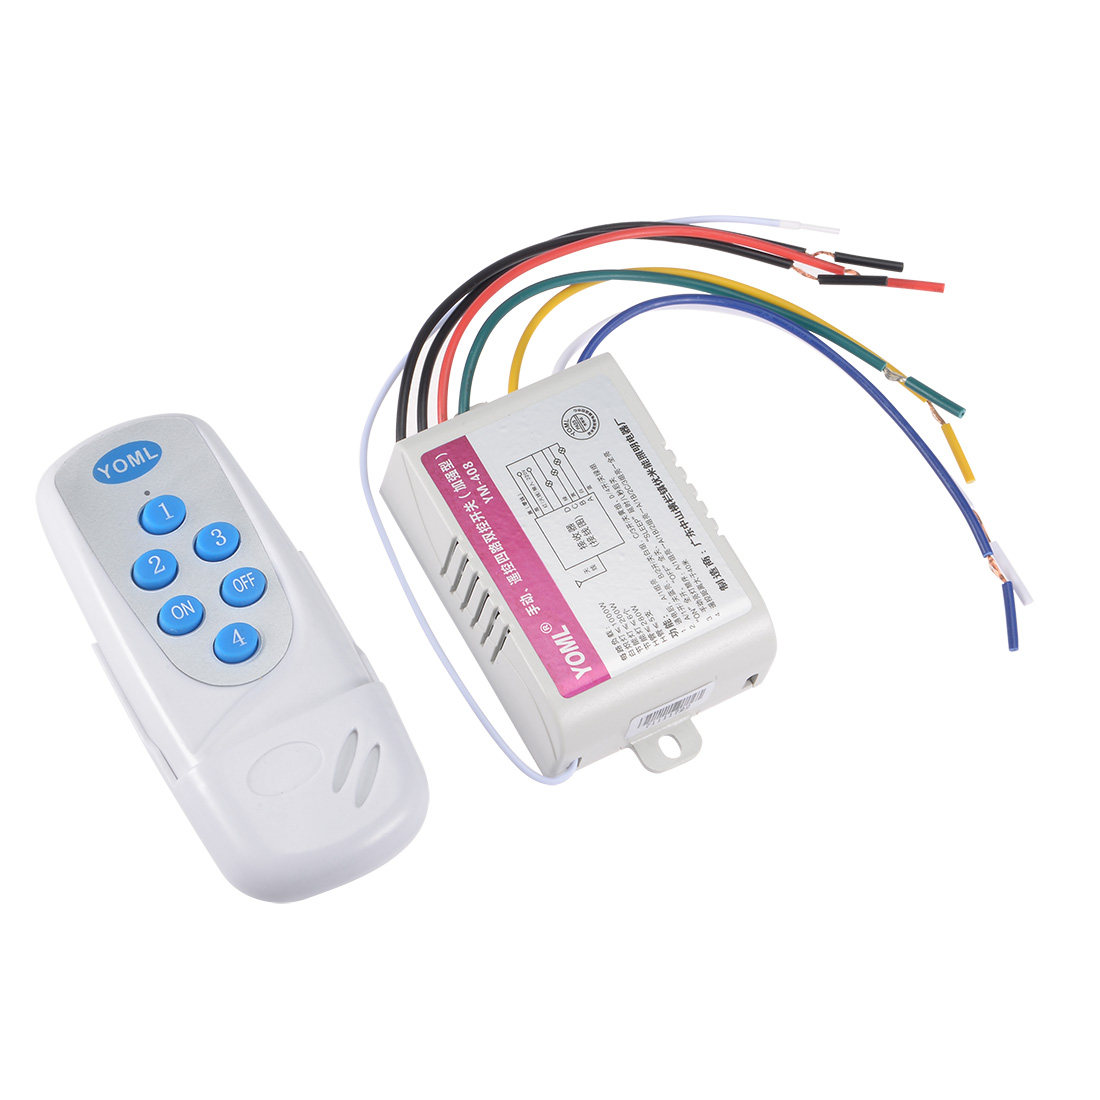 AC 220-240V 4 Port White Wireless Digital RC Remote Control Wall Lamp Switch